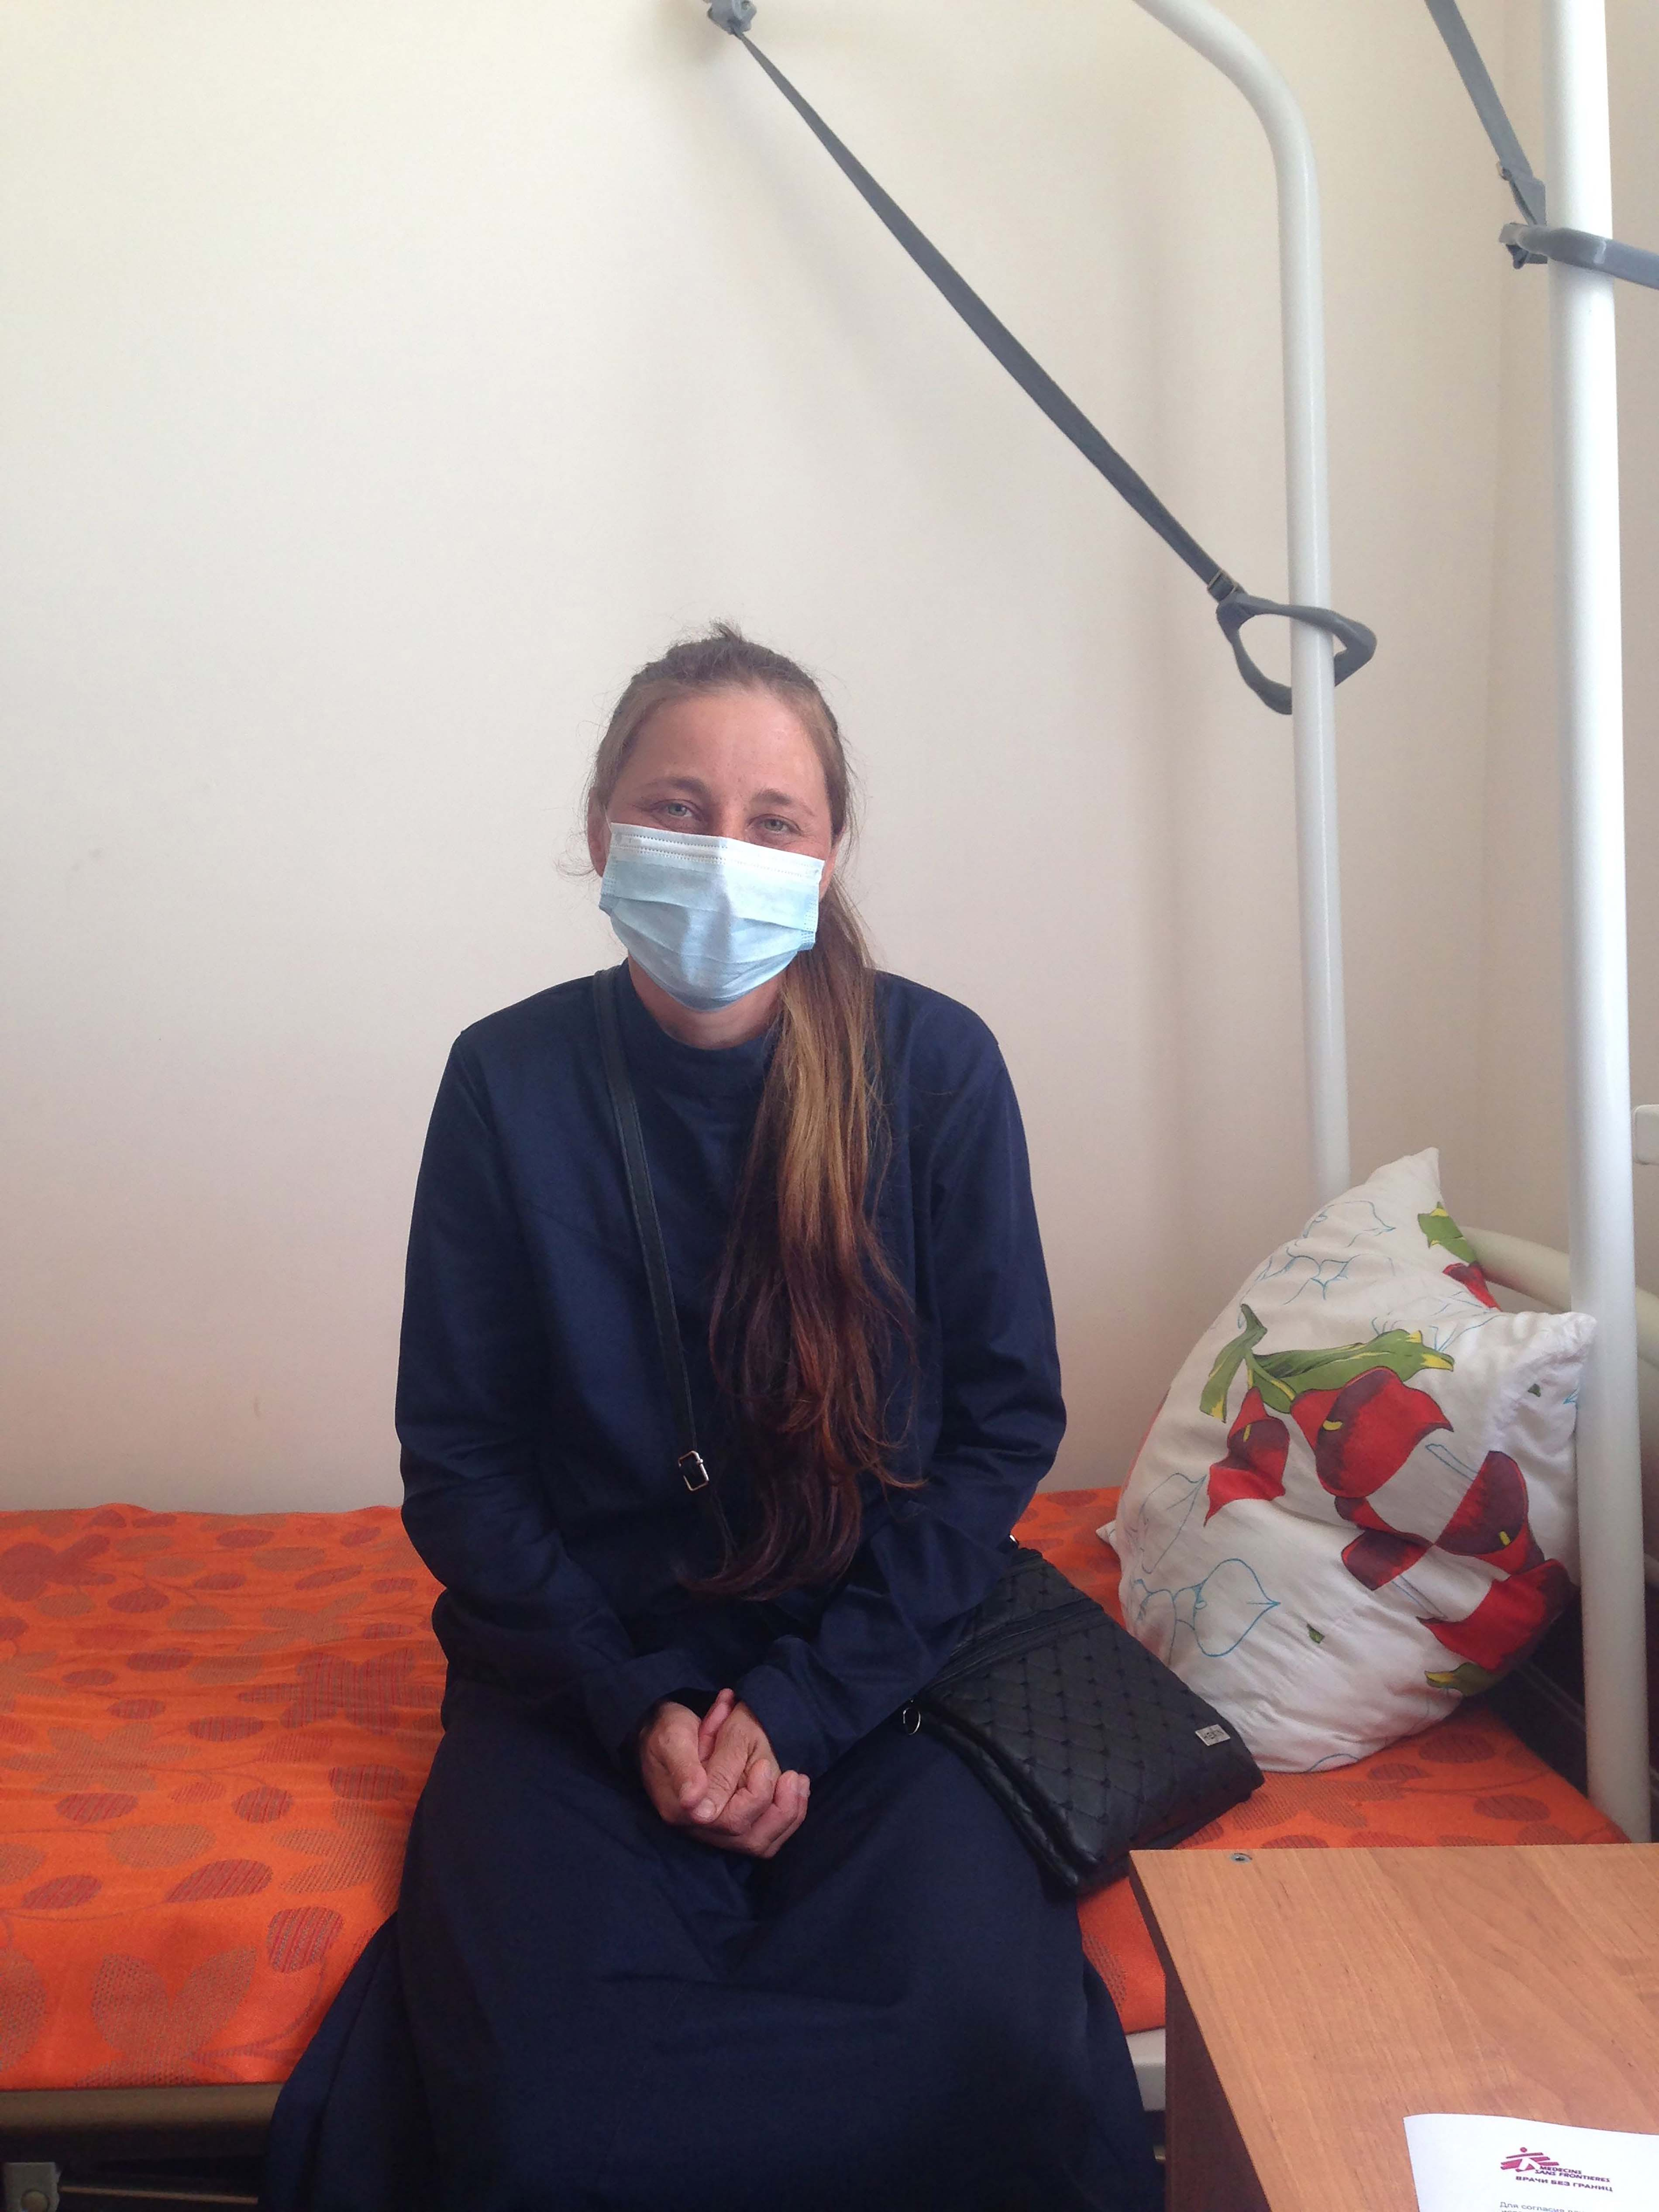 35-year old Elena is receiving treatment for XDR-TB in Grozny. She is one of 51 patients MSF is caring for, with a new combination of drugs that have never been used in the country before.